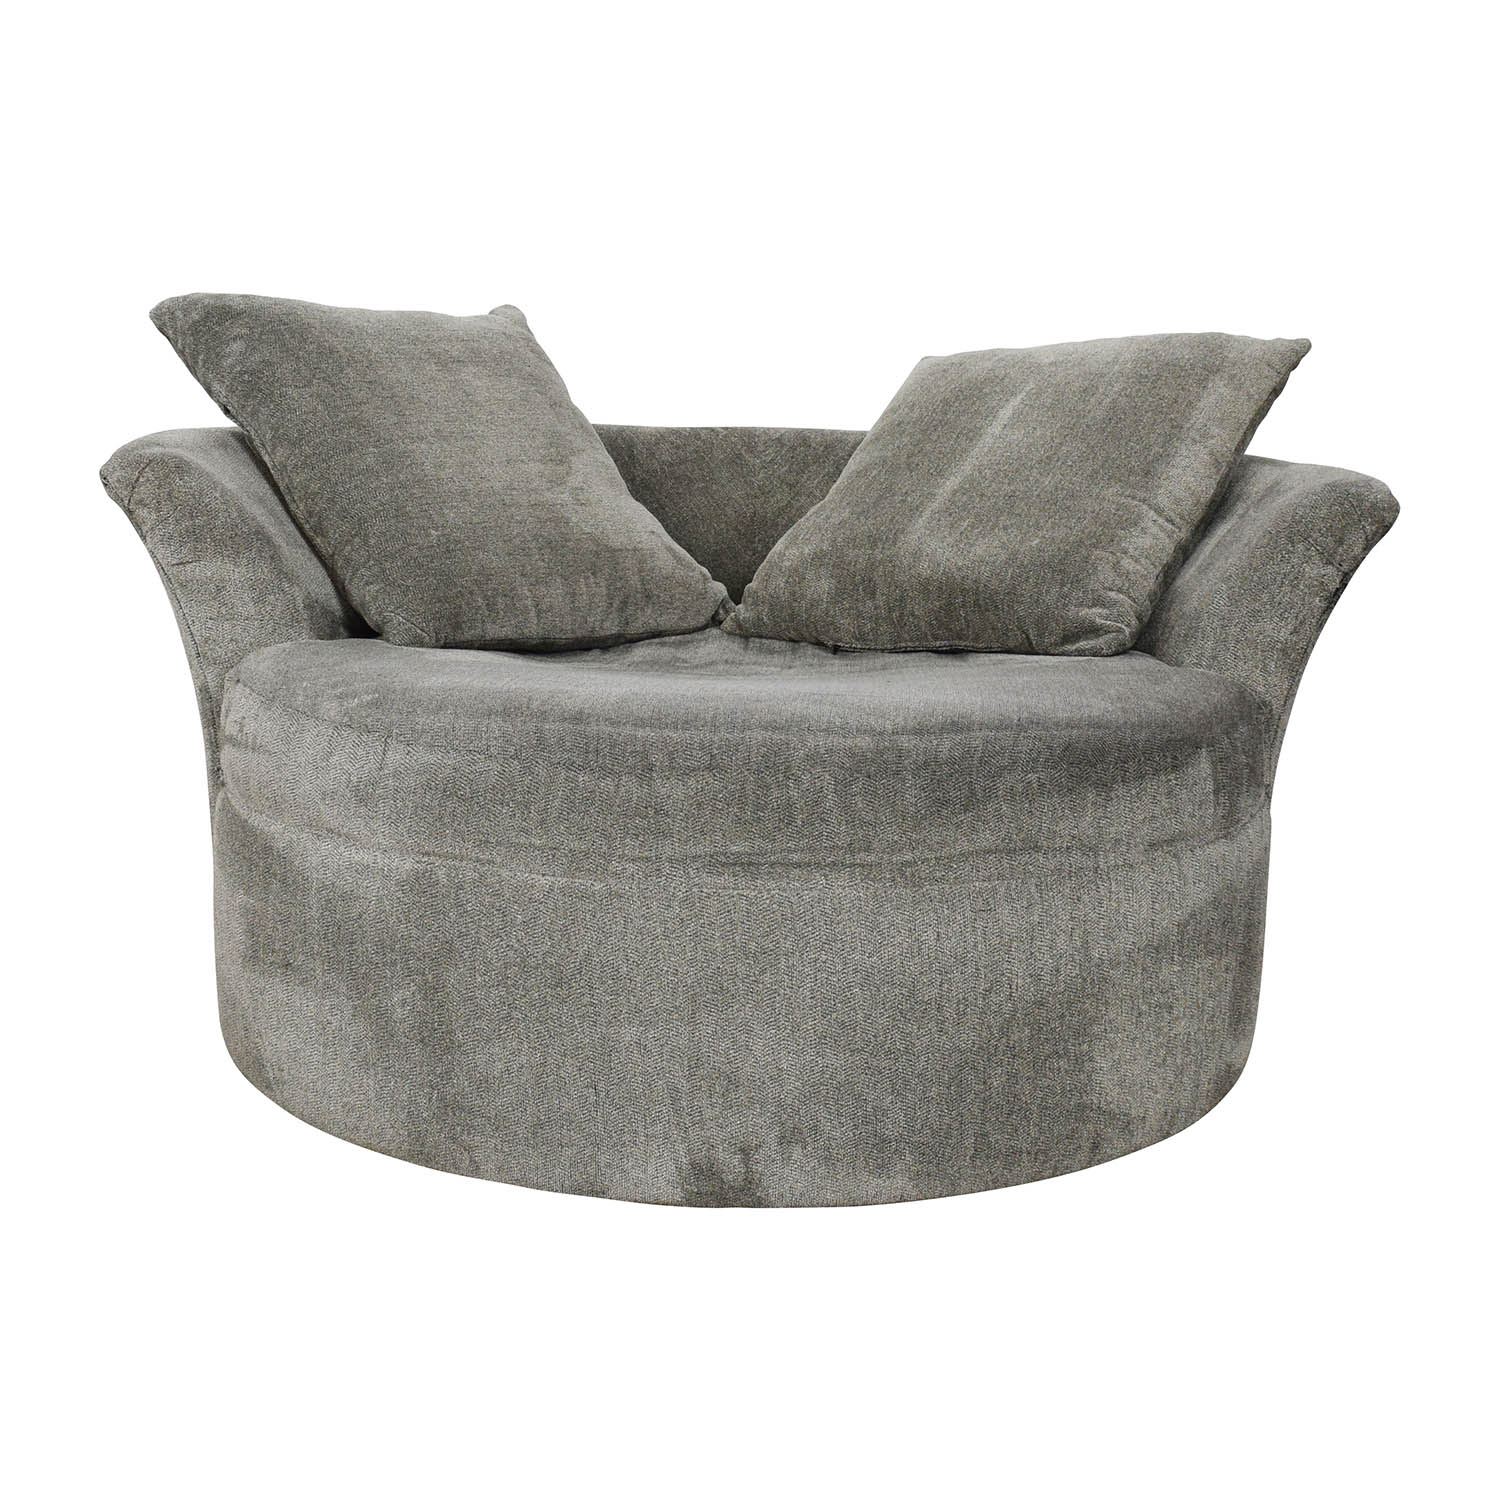 Bobs Furniture Bobs Furniture Grey Circular Loveseat coupon